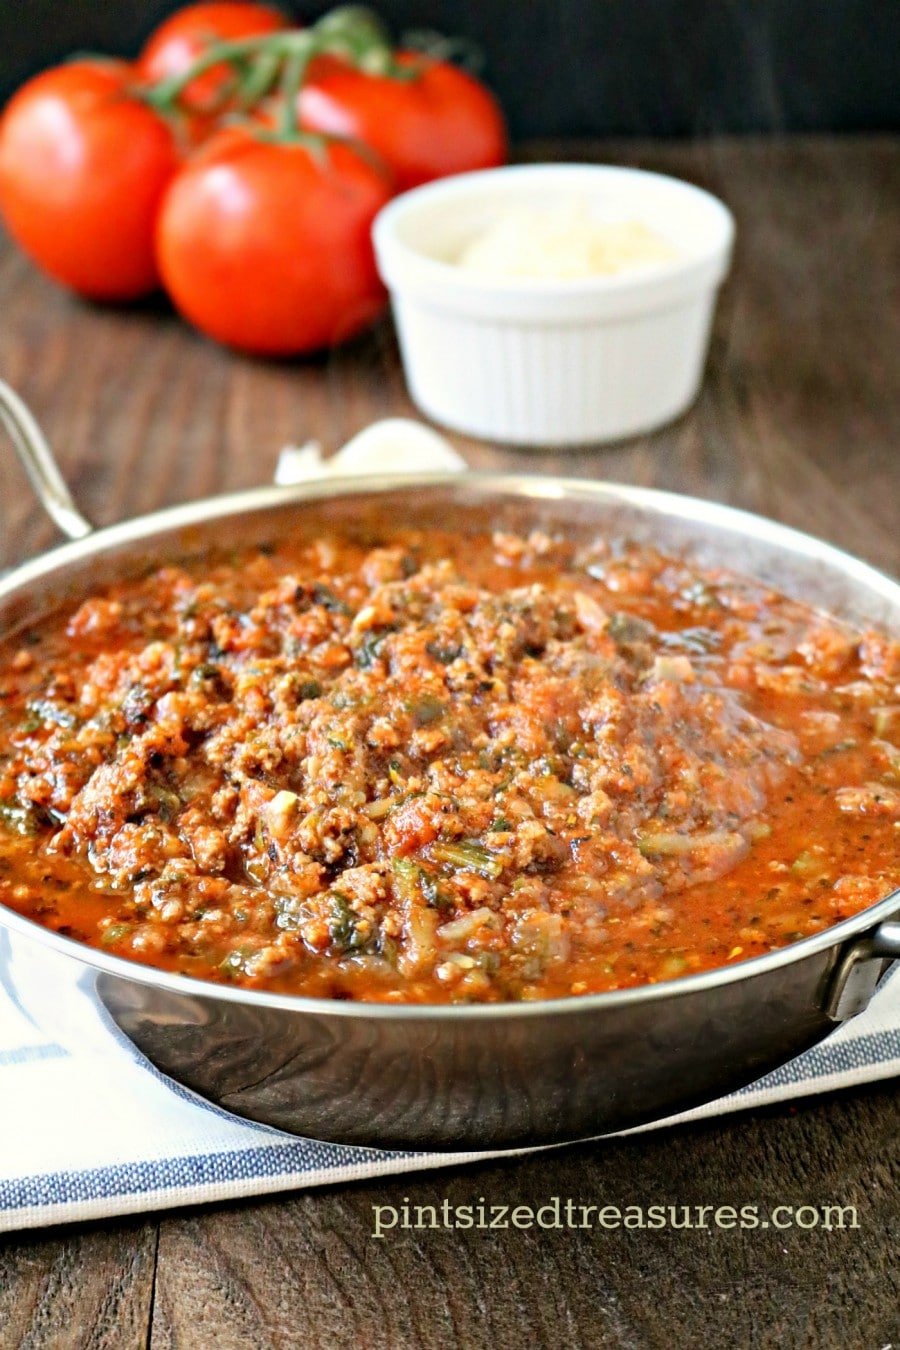 Easy Italian Bolognese Sauce · Pint-sized Treasures